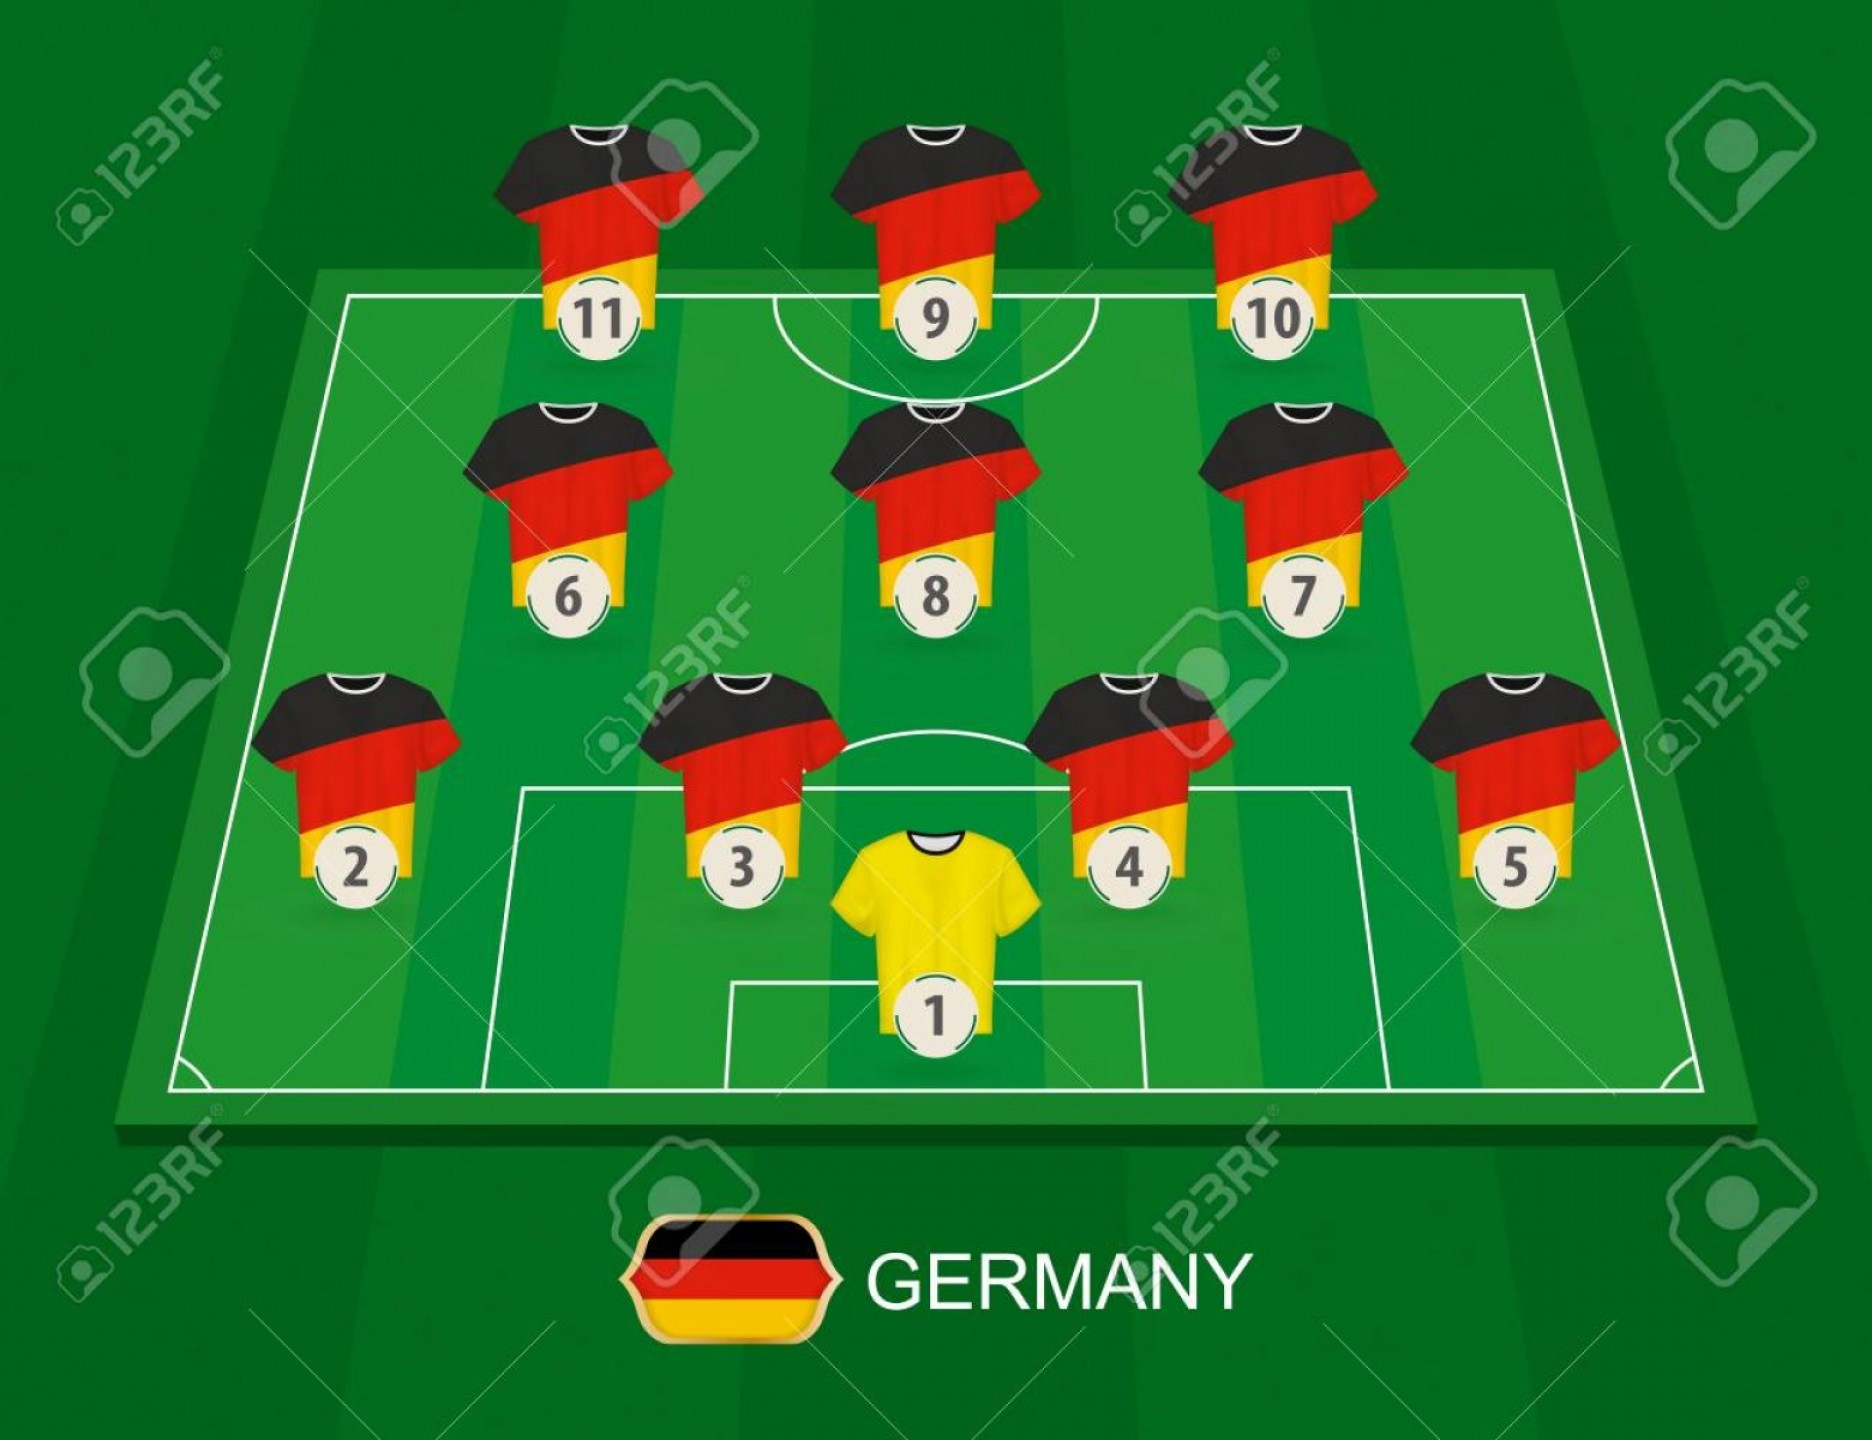 Mislo Toe Vector Art: Photostock Vector Soccer Field With The Germany National Team Players Lineups Formation On Half Football Field